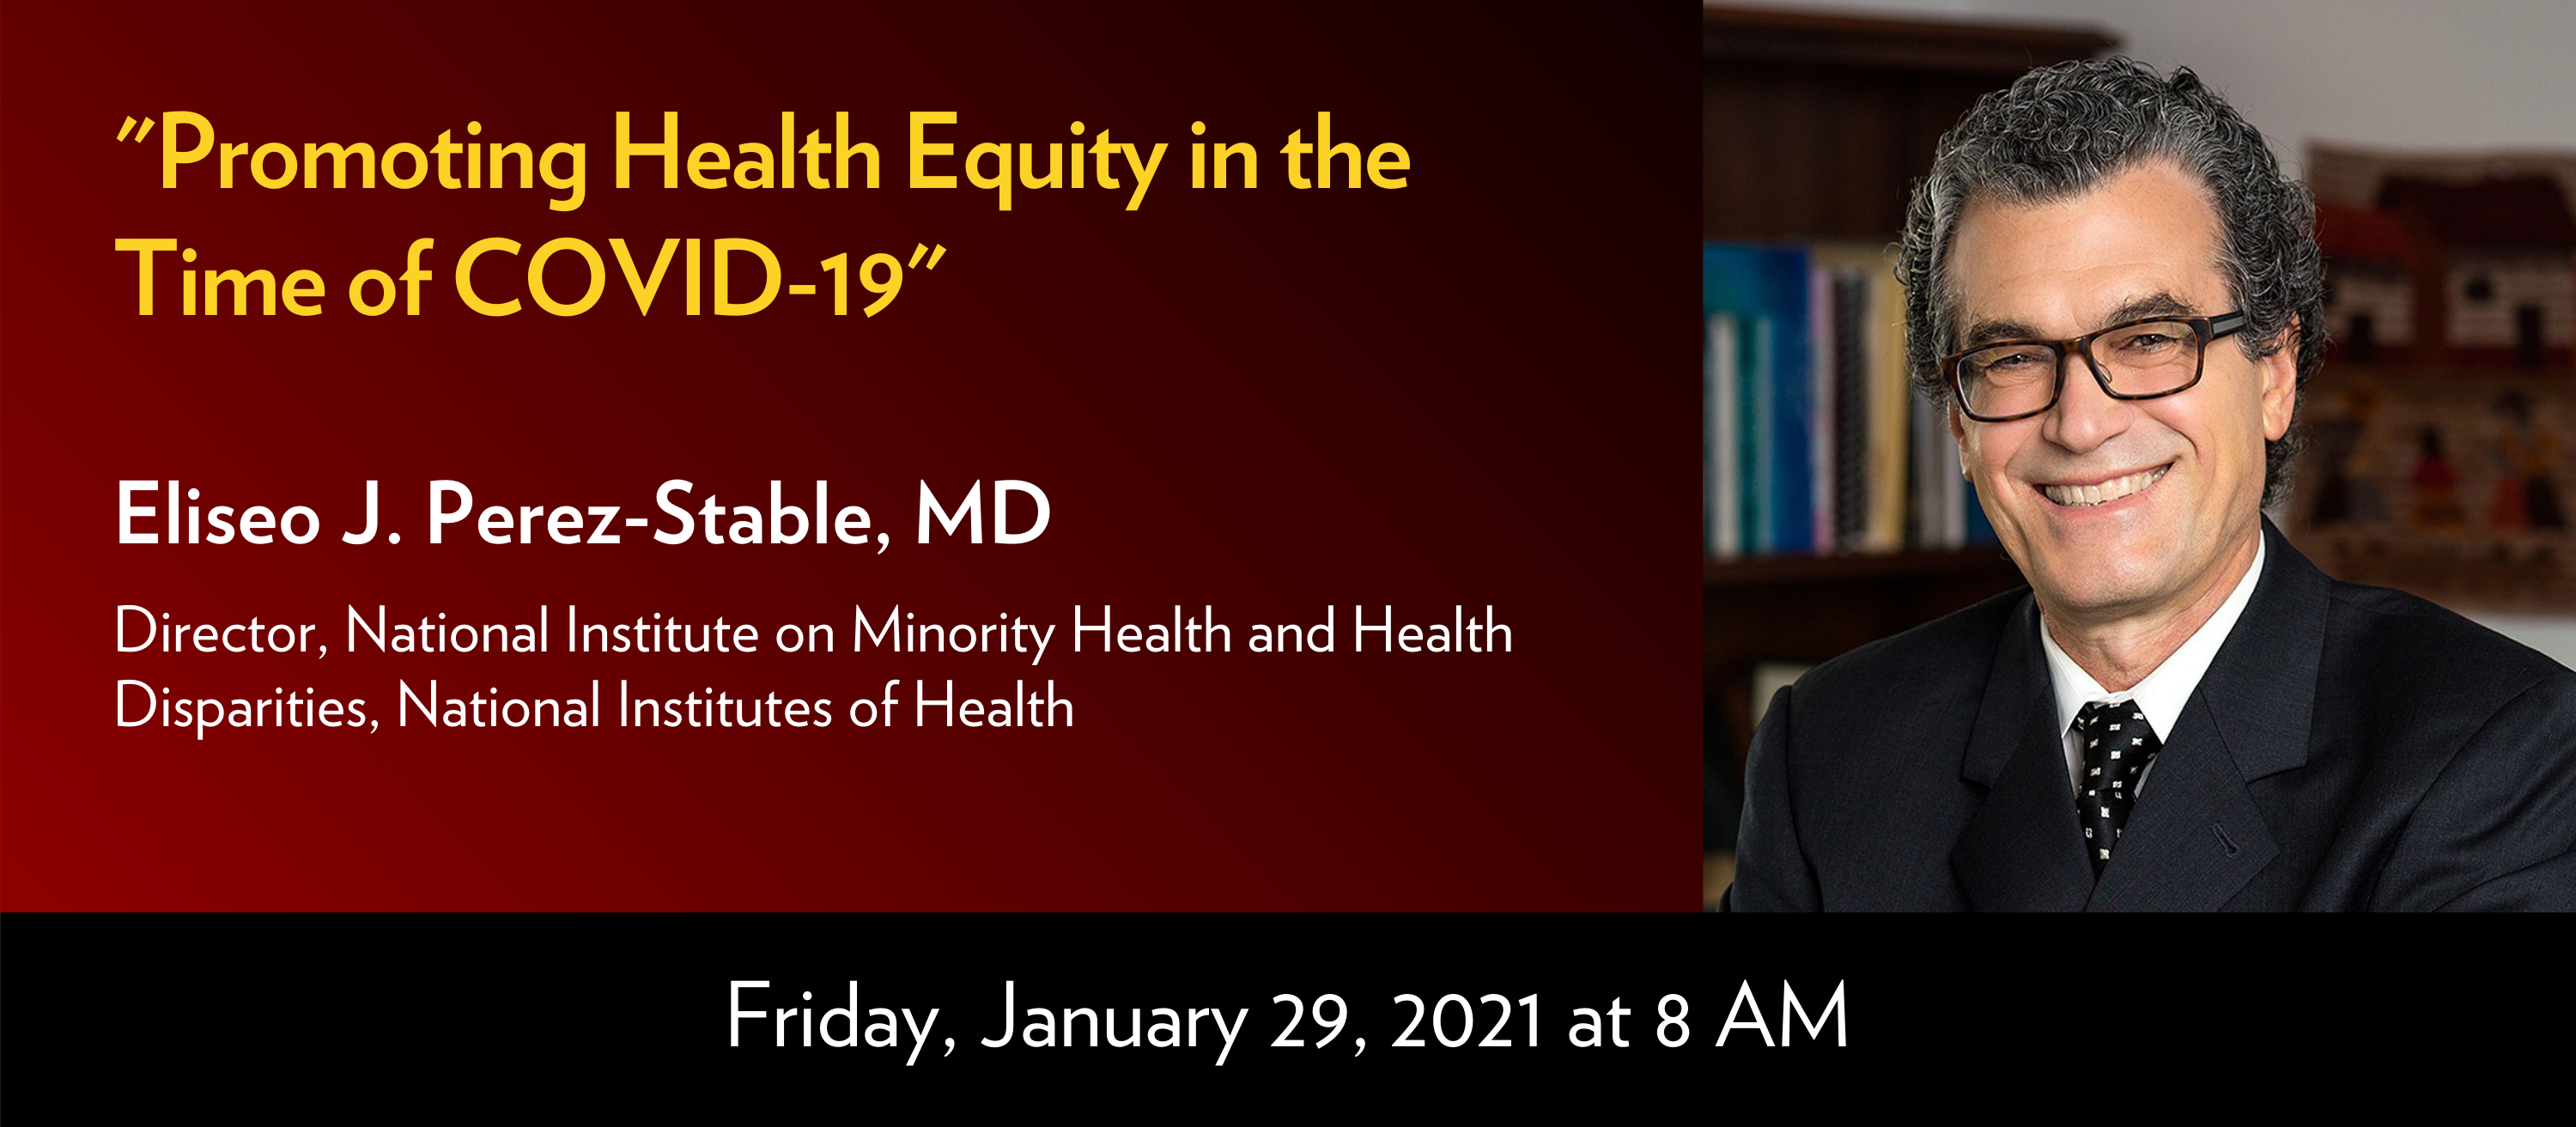 Eliseo J.Perez-Stable, MD Promoting Health Equity in the Time of COVID-19